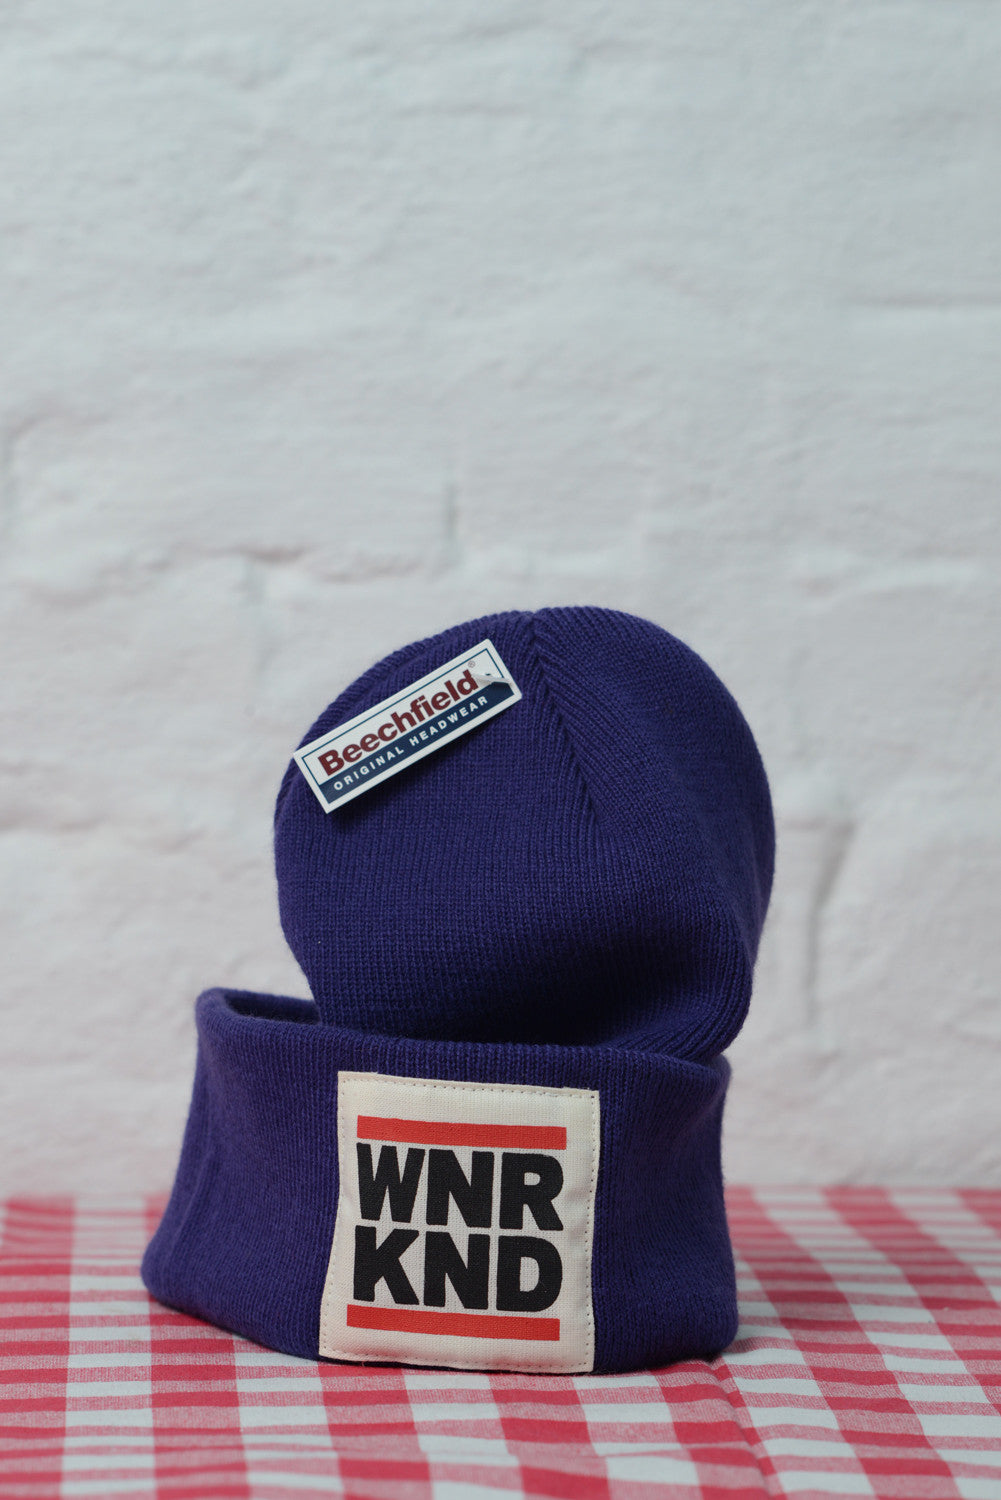 WNRKND Original Beanie purple